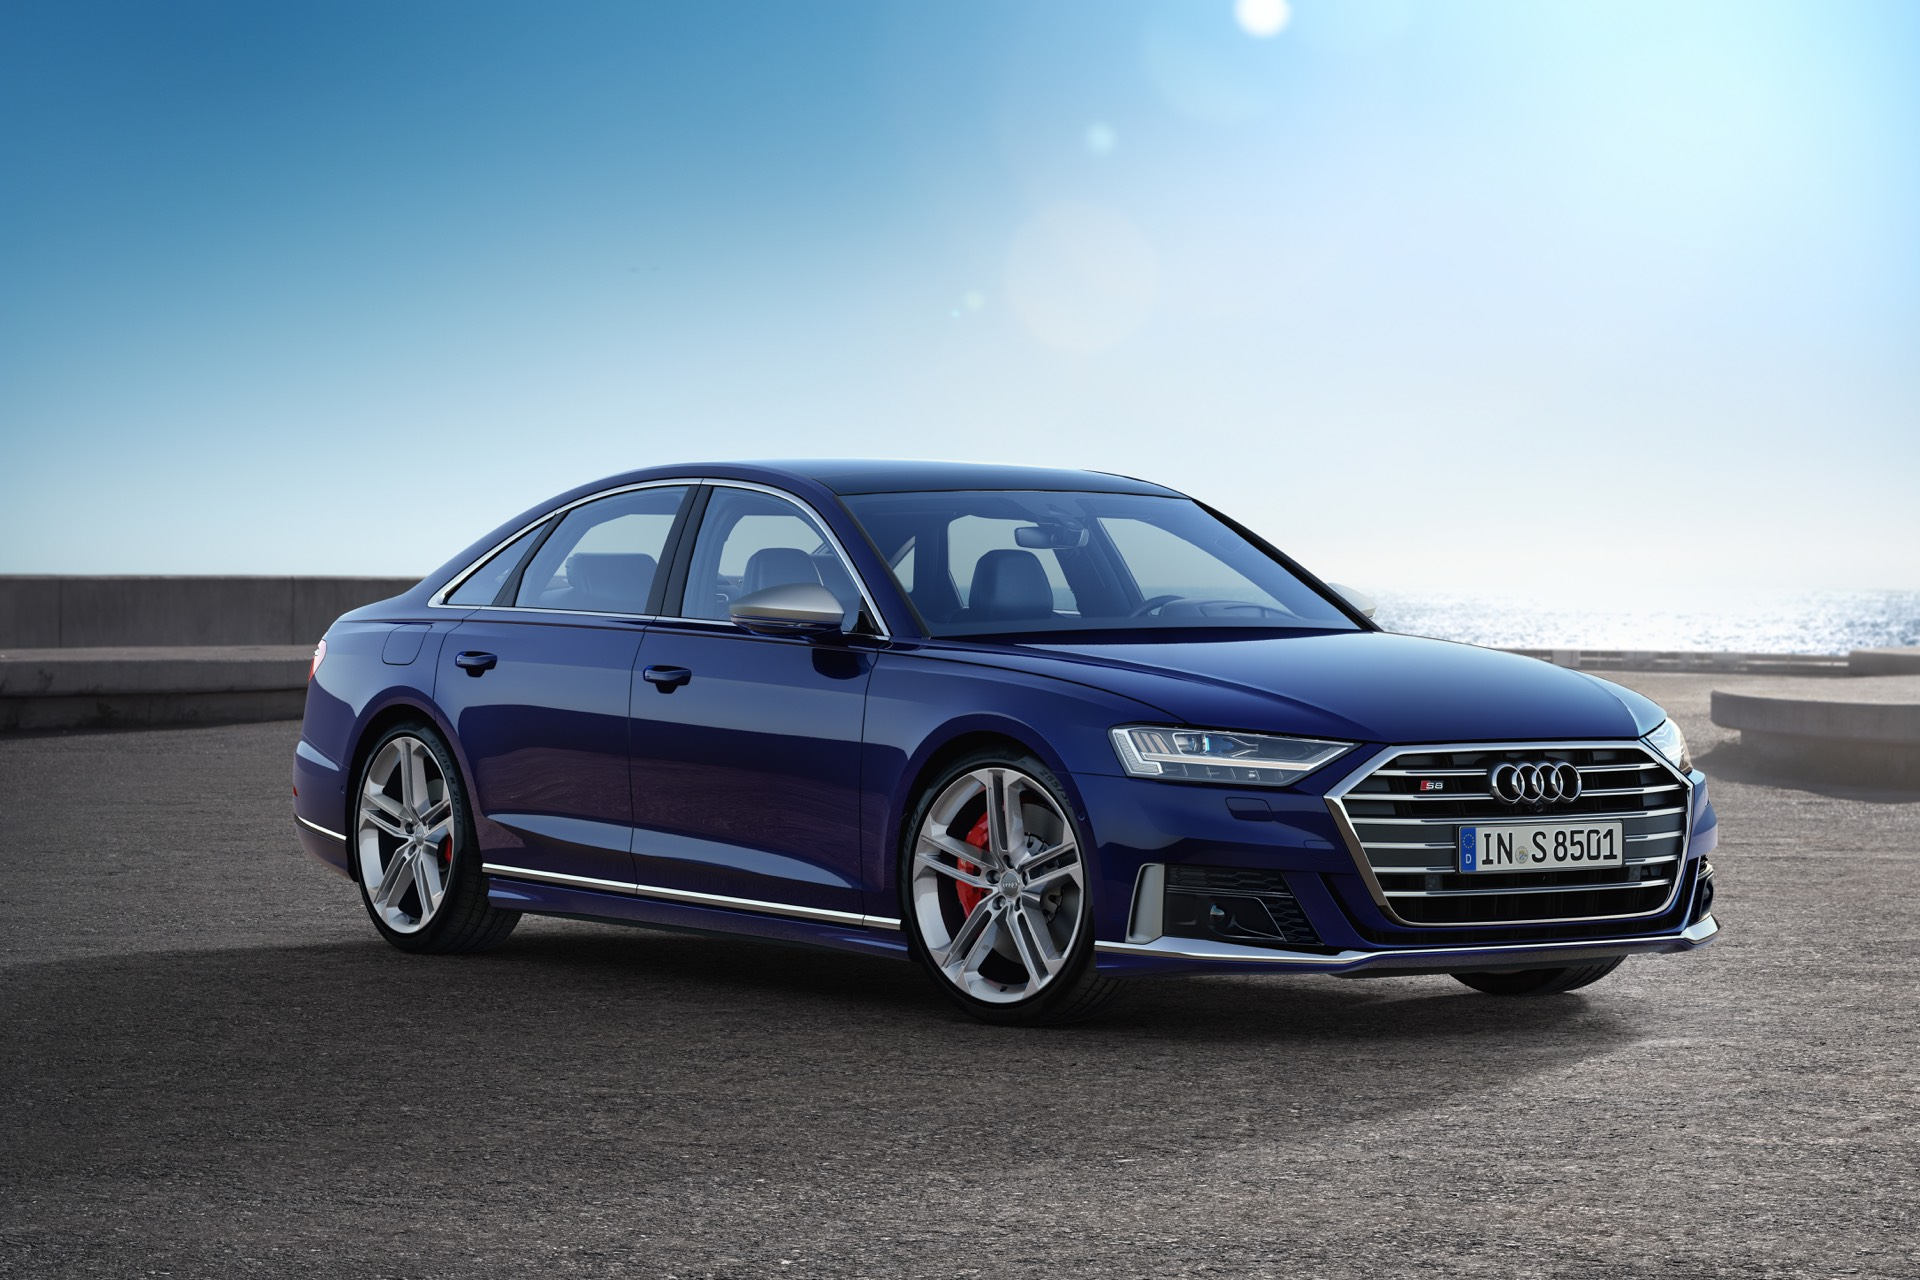 New Audi S8 Revealed with 571 hp V8